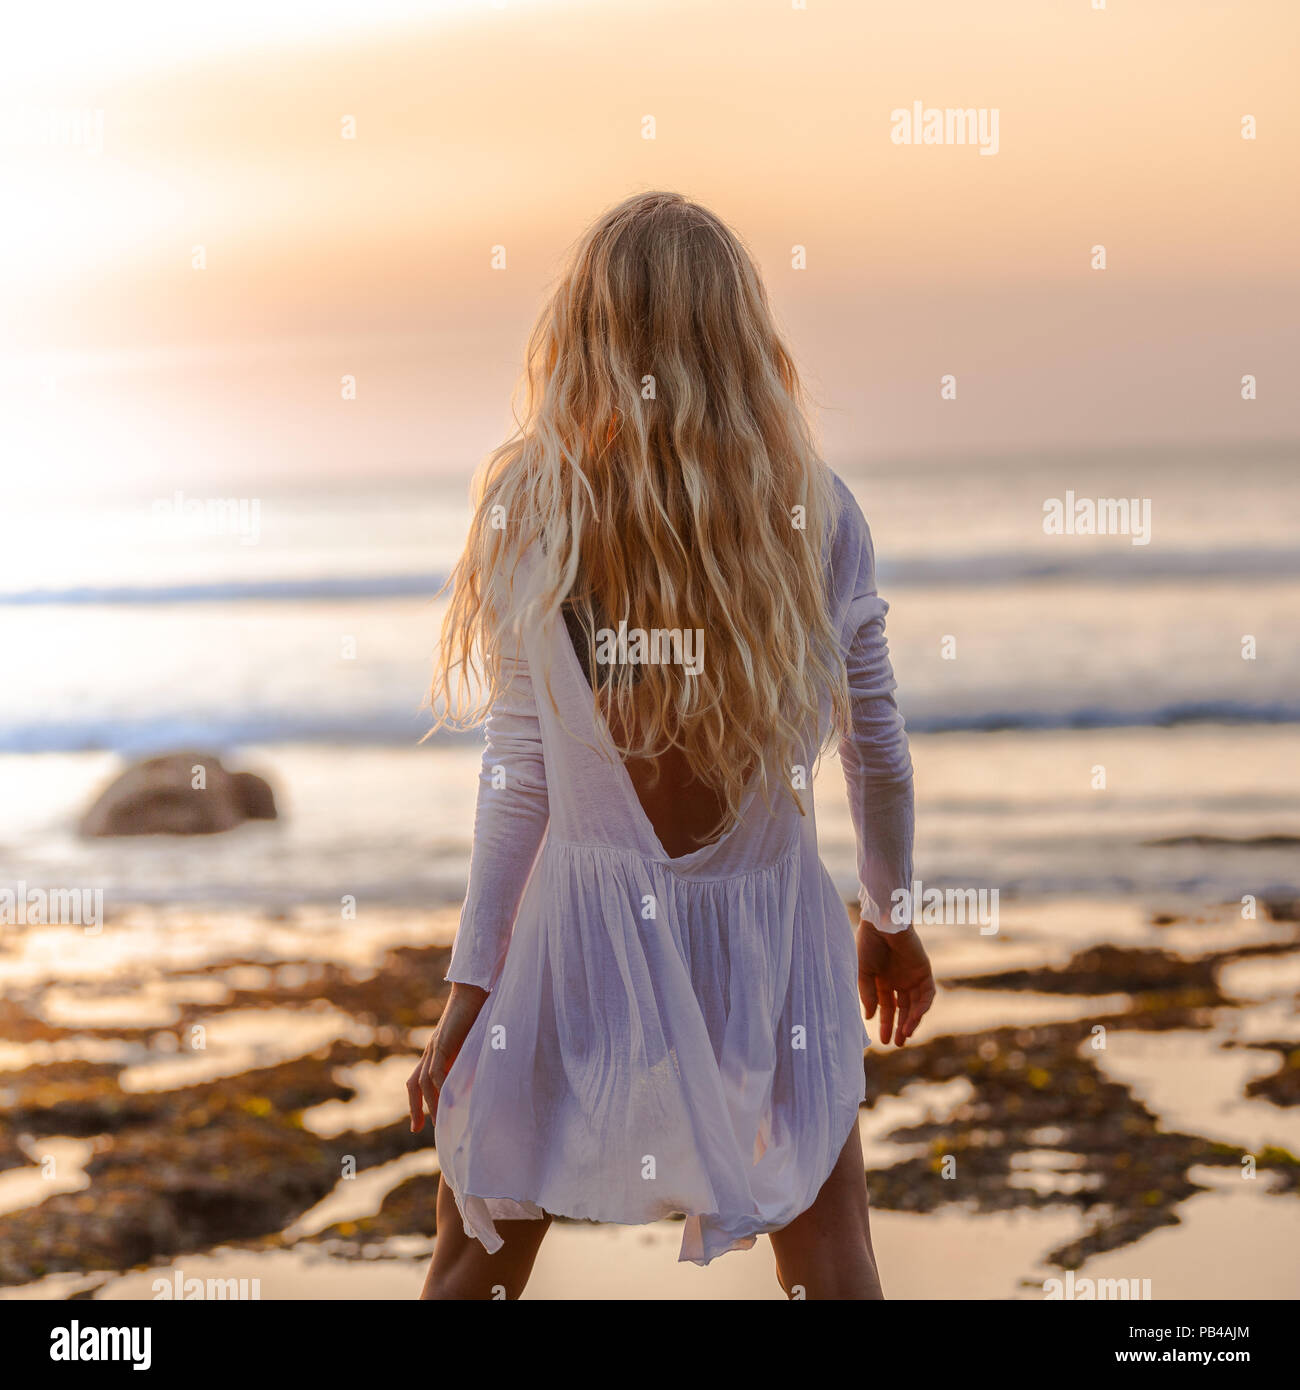 Beautiful blonde girl with long hair in short white dress looking at sunset on the beach in Bali, Indonesia, from behind standing - Stock Image